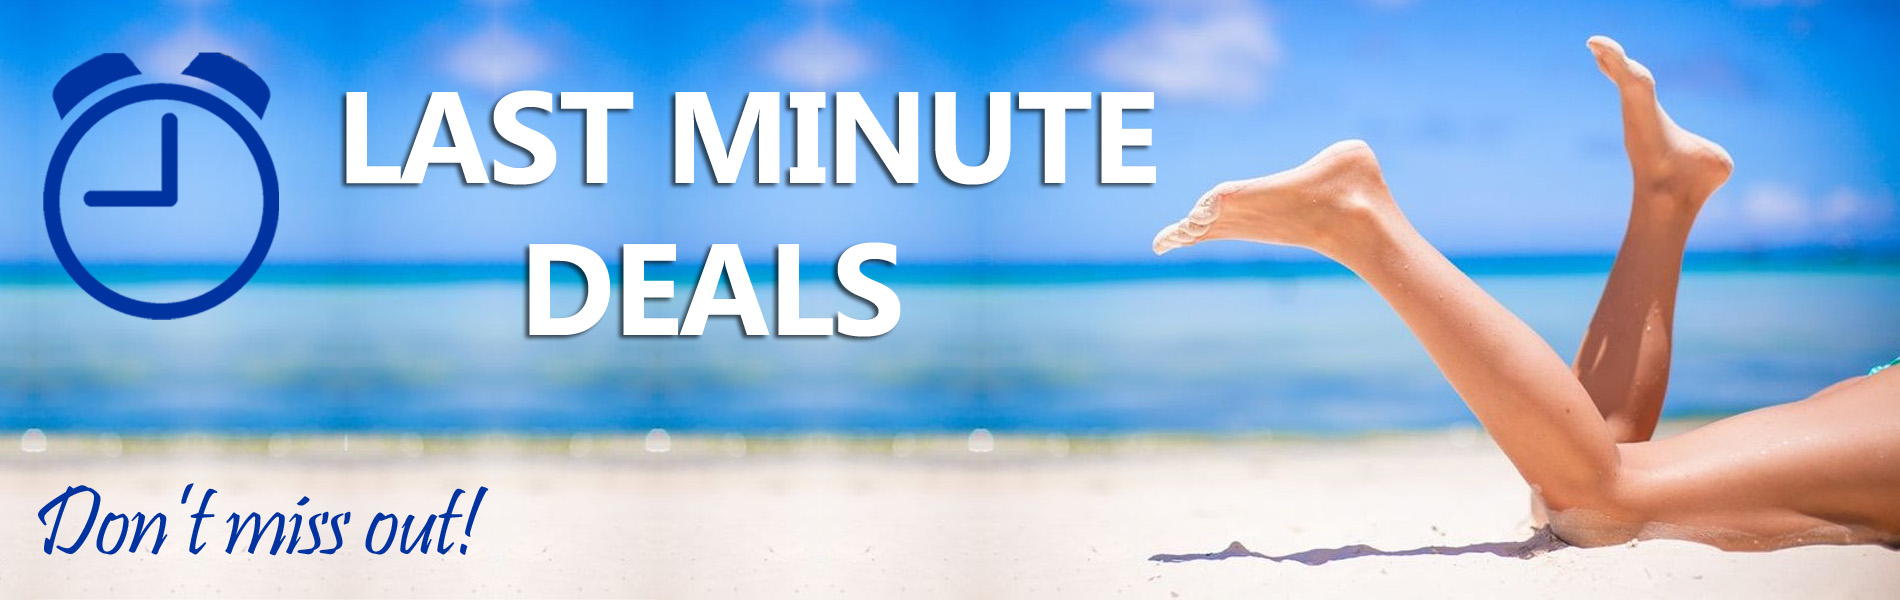 Bag a last minute holiday deal with Althams Travel's Latest